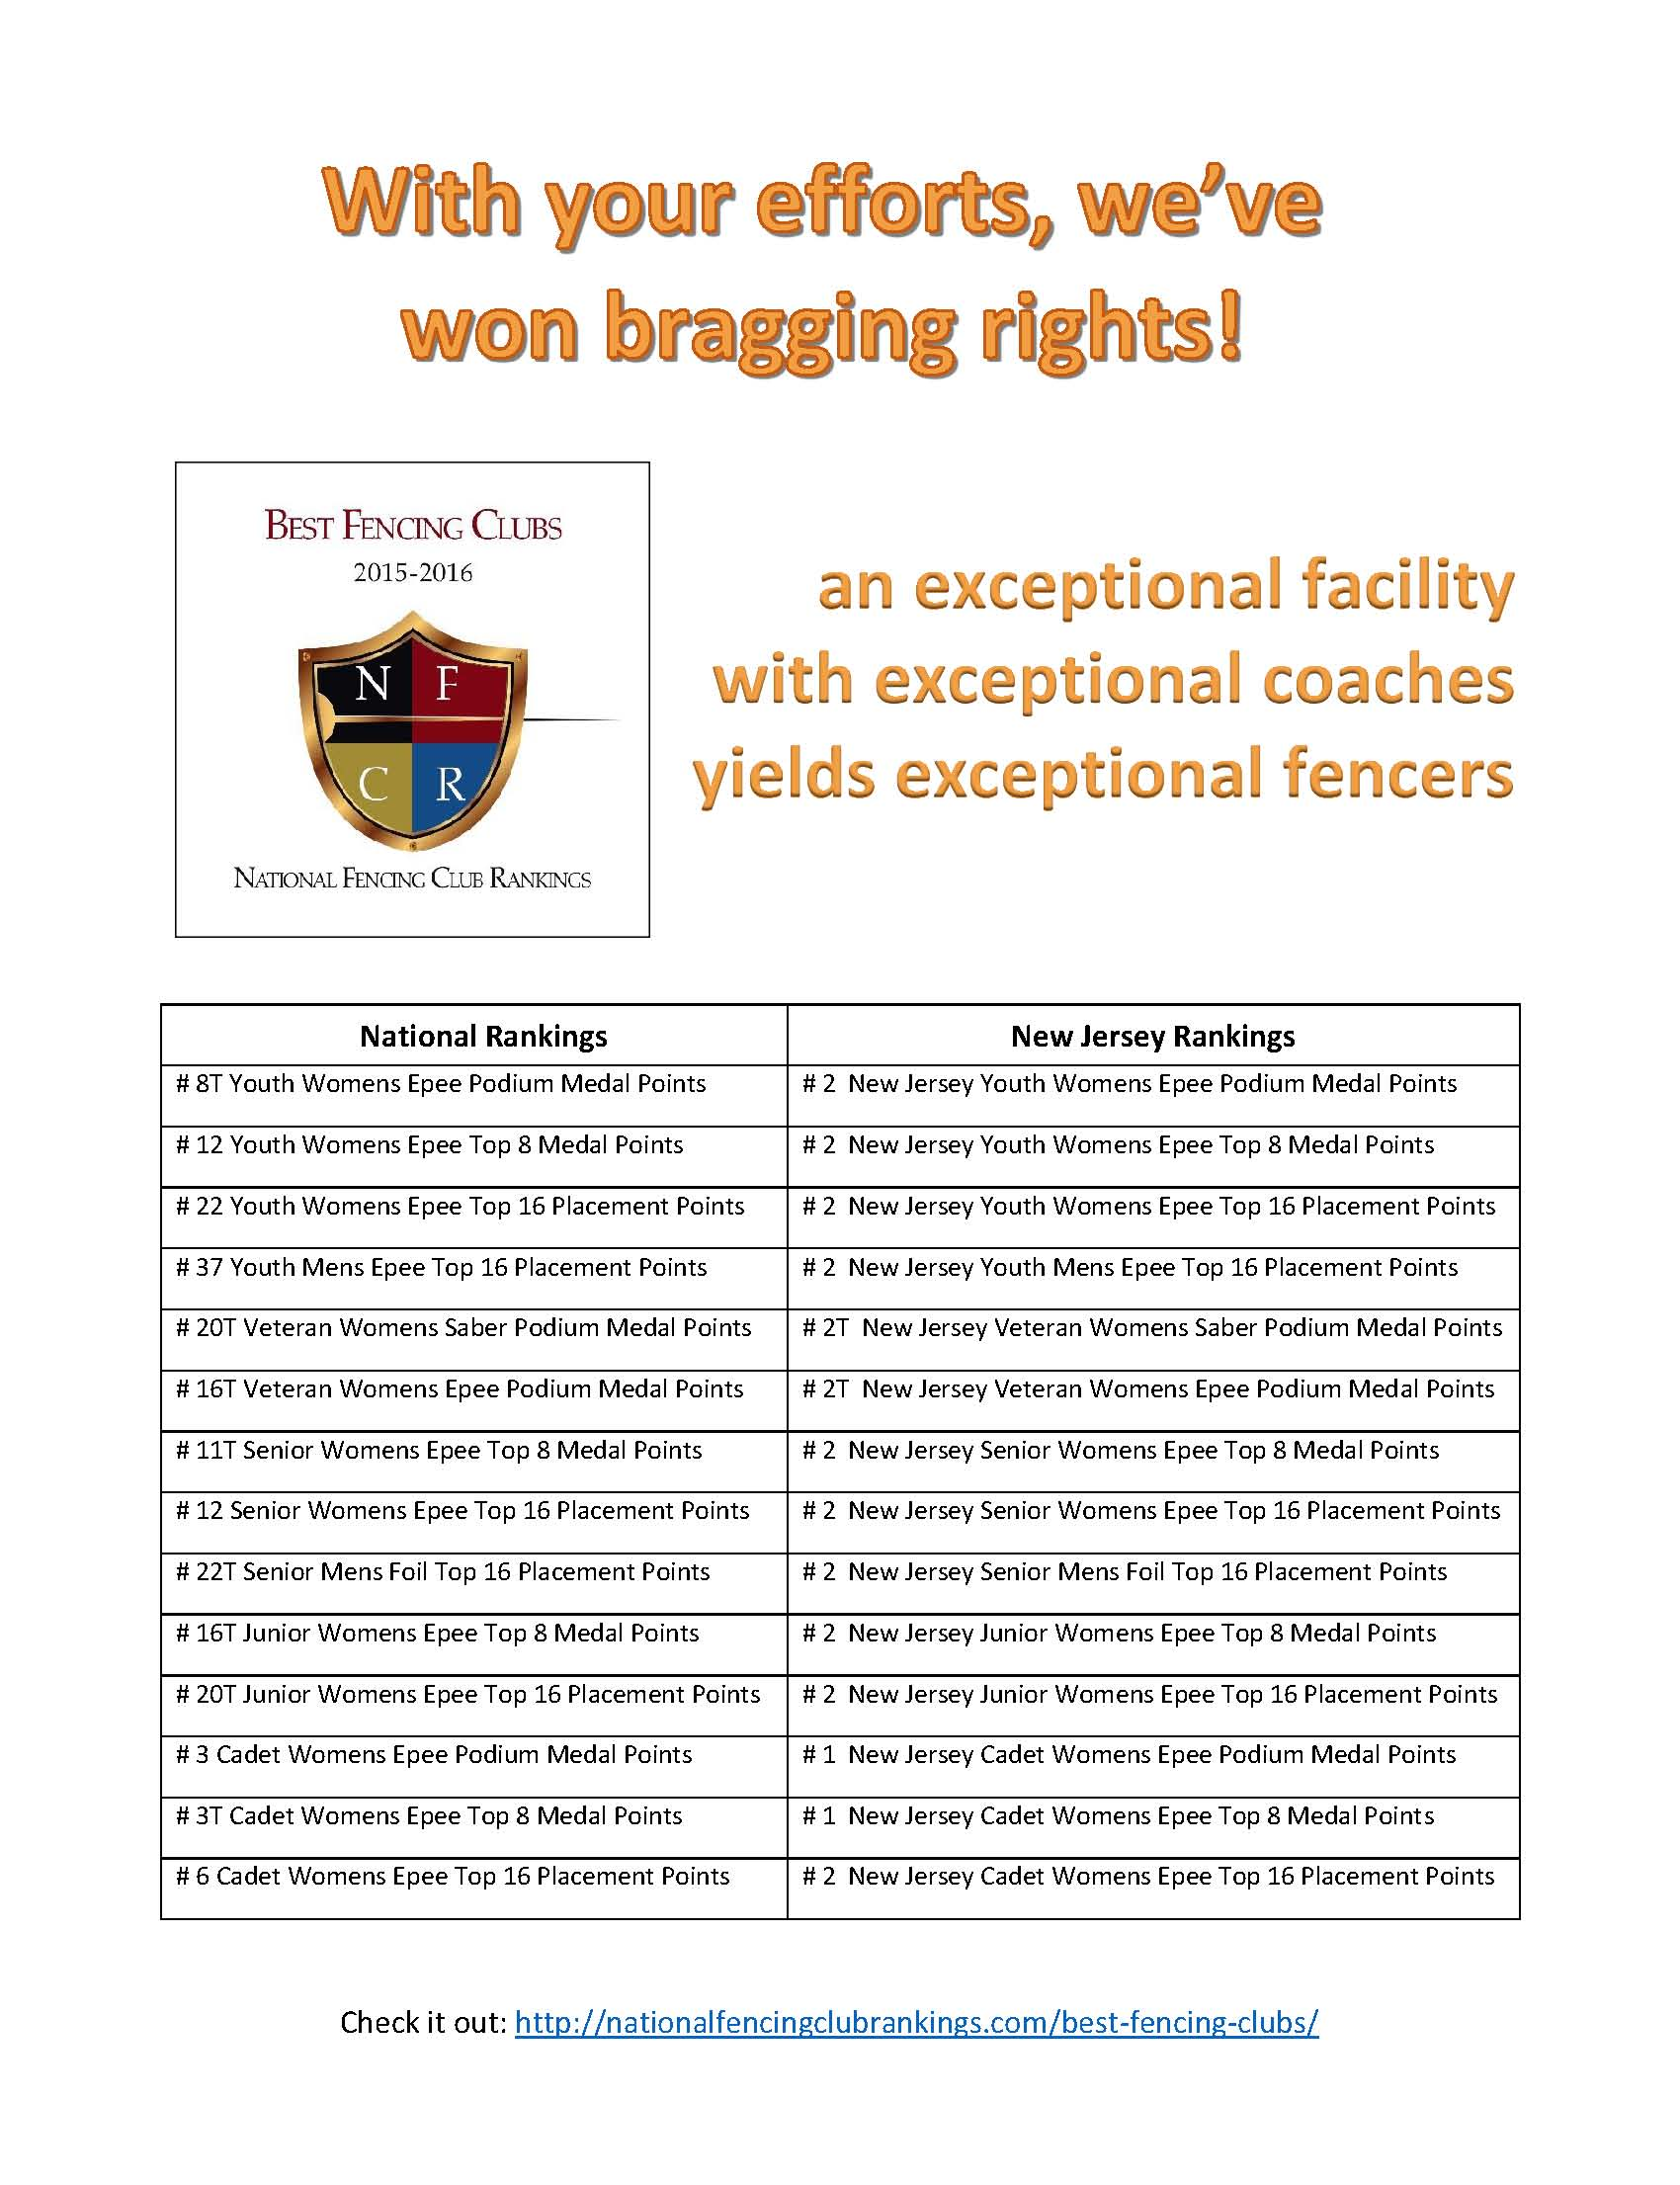 afa-best-fencing-clubs-2015-16-page1